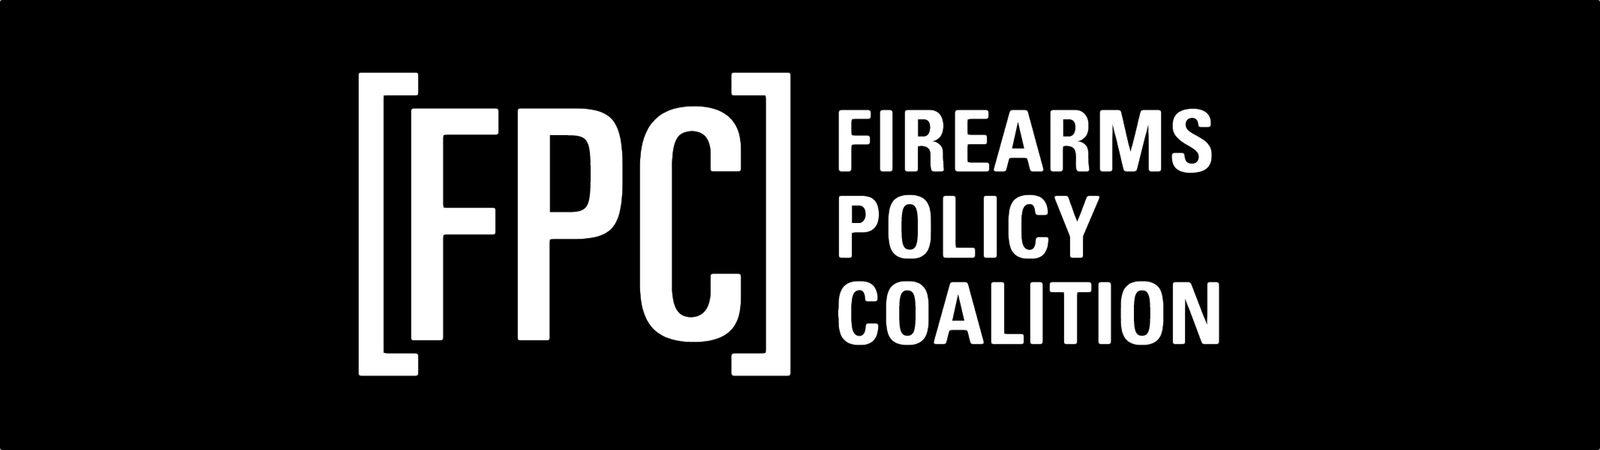 Firearms Policy Coalition: Take Action Landing Pages